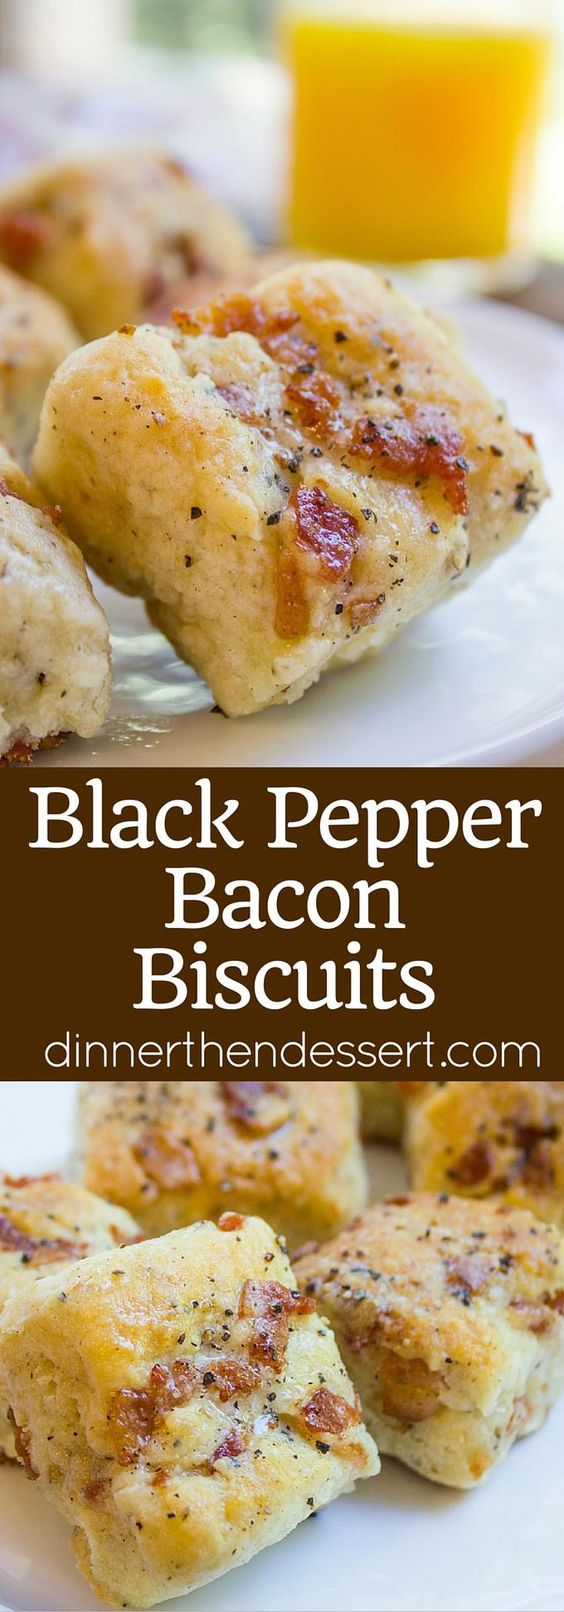 """Black Pepper Bacon Biscuits are peppery, full of delicious bacon, cream cheese and buttermilk, they are fluffy and flaky. The perfect biscuit for your weekend brunch!"" Recipe via Dinner then Dessert - The Best Homemade Biscuits Recipes - Quick, Easy and Delicious Bread Sides for Breakfast, Brunch, Lunch and Family Dinner!"